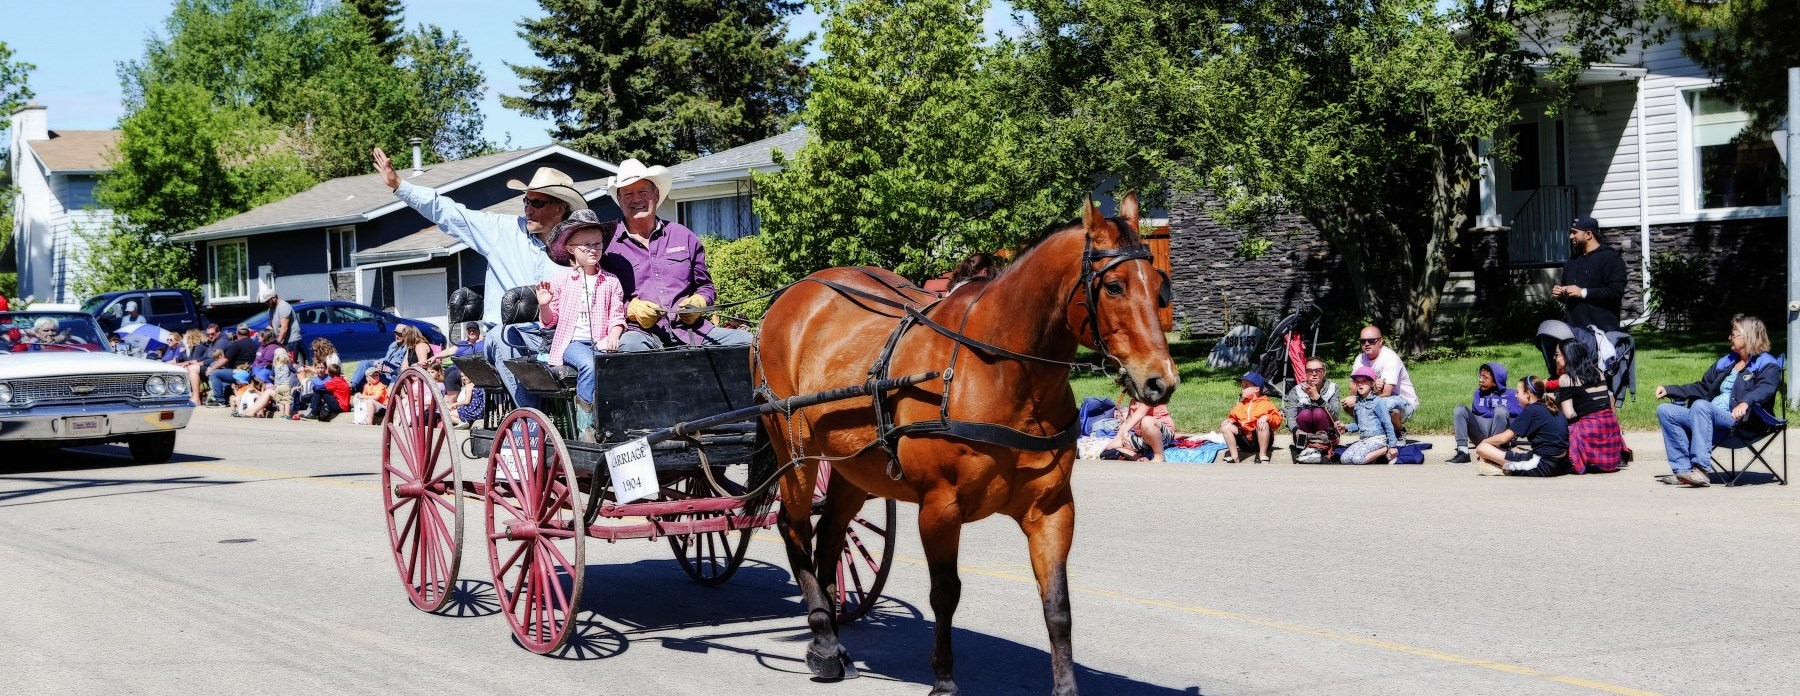 parade members in horse drawn buggy